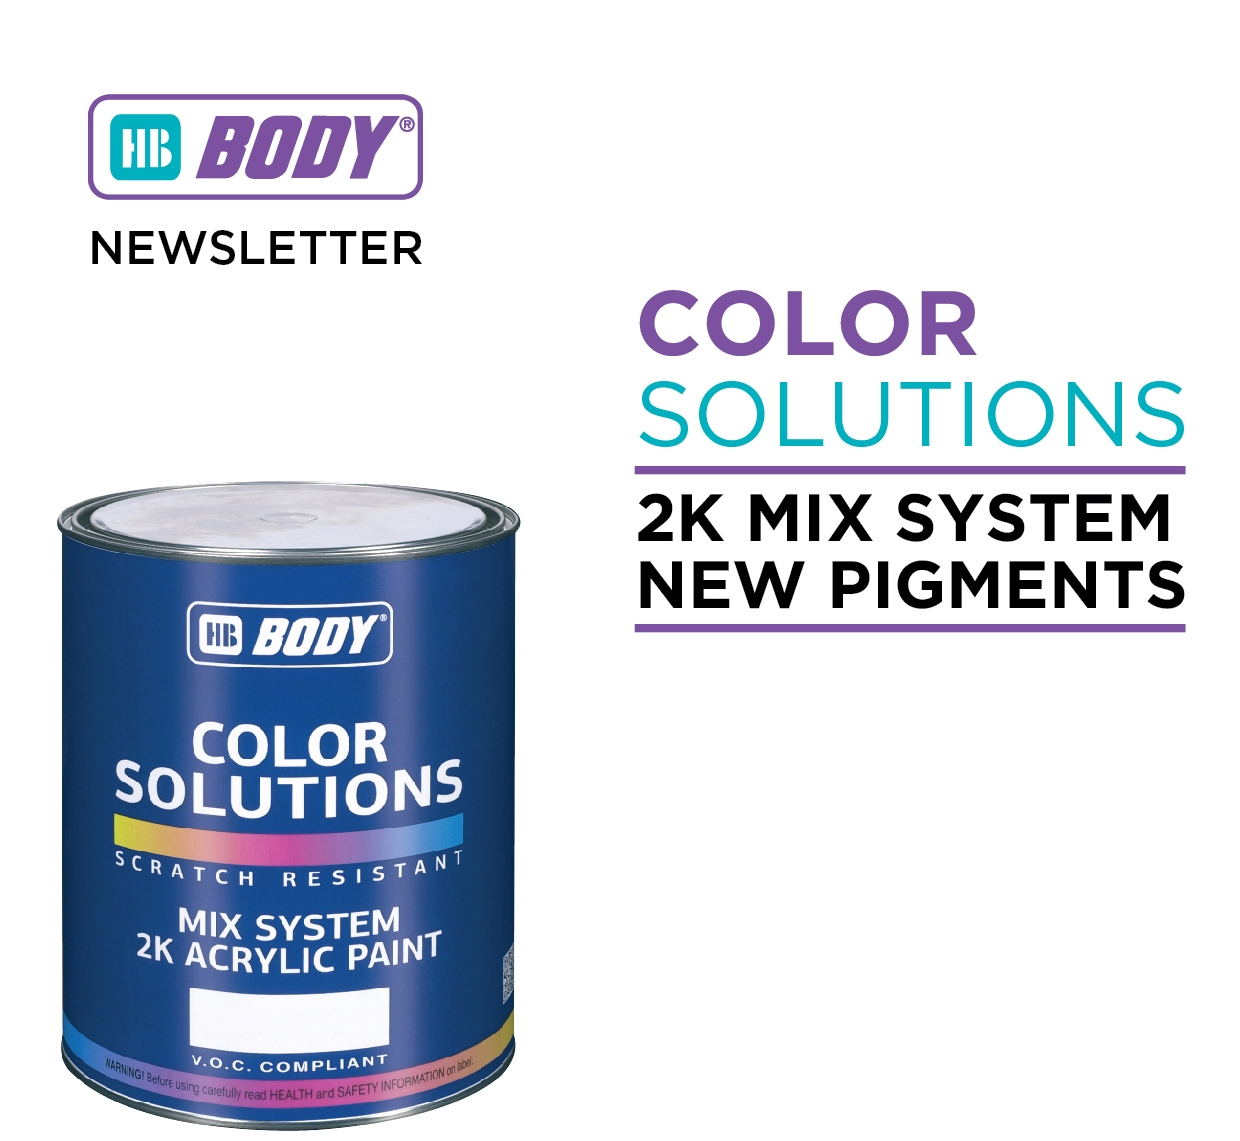 HB BODY COLOR SOLUTIONS 2K MIX